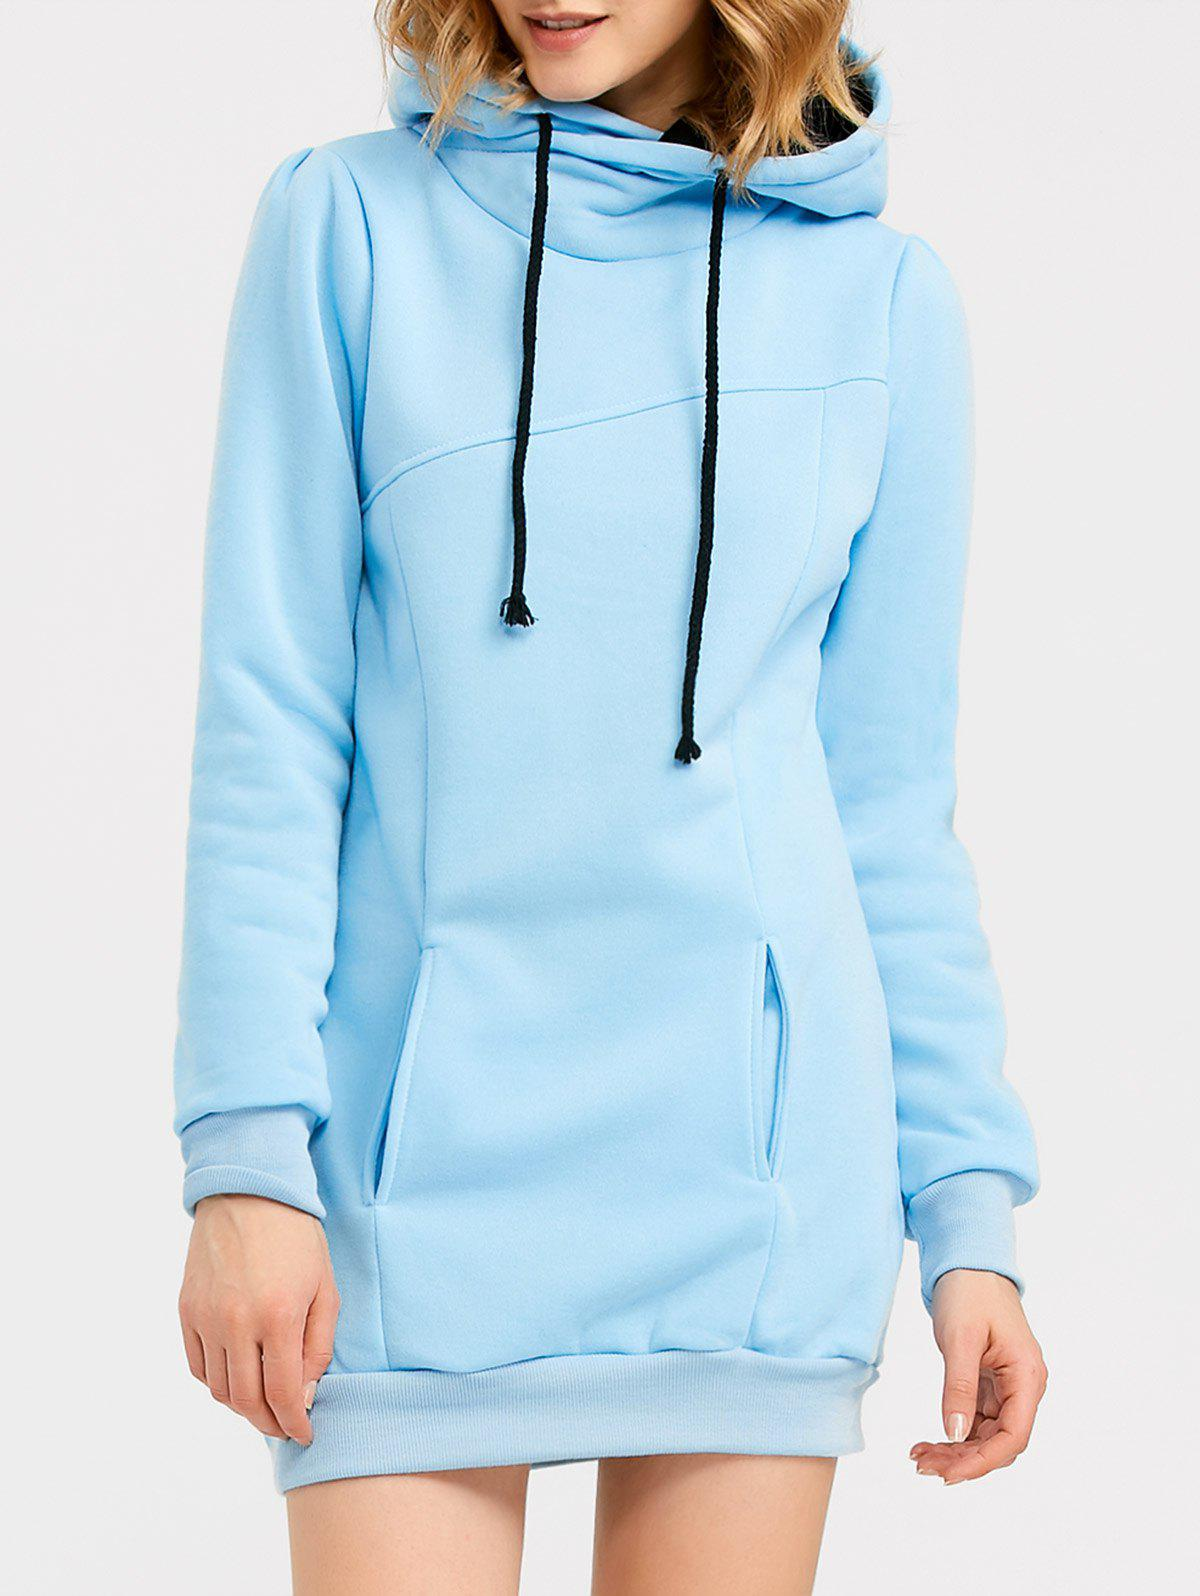 Candy Color Hooded Pullover HoodieWOMEN<br><br>Size: M; Color: LIGHT BLUE; Material: Spandex; Shirt Length: Long; Sleeve Length: Full; Style: Streetwear; Pattern Style: Solid; Season: Fall,Spring; Weight: 0.455kg; Package Contents: 1 x Hoodie;